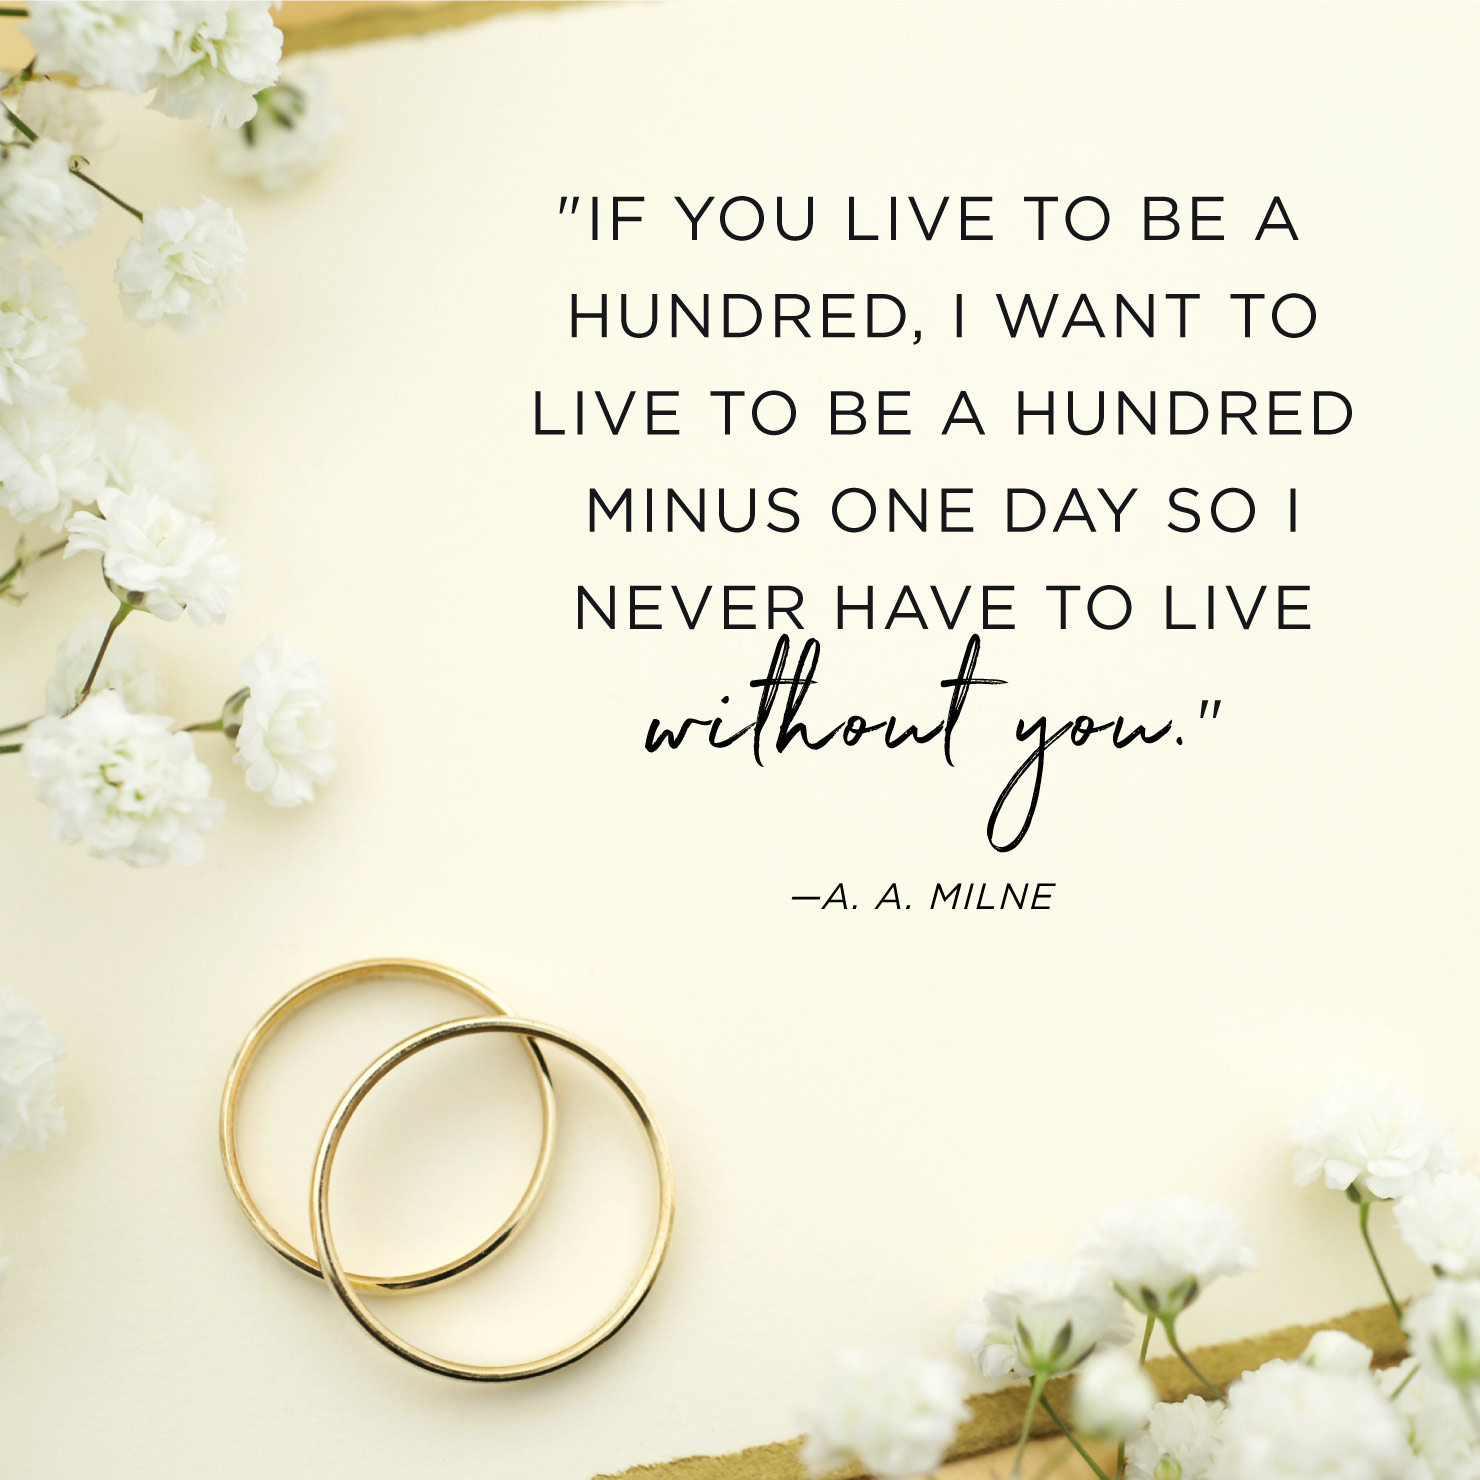 60 Happy Anniversary Quotes To Celebrate Your Love Shutterfly